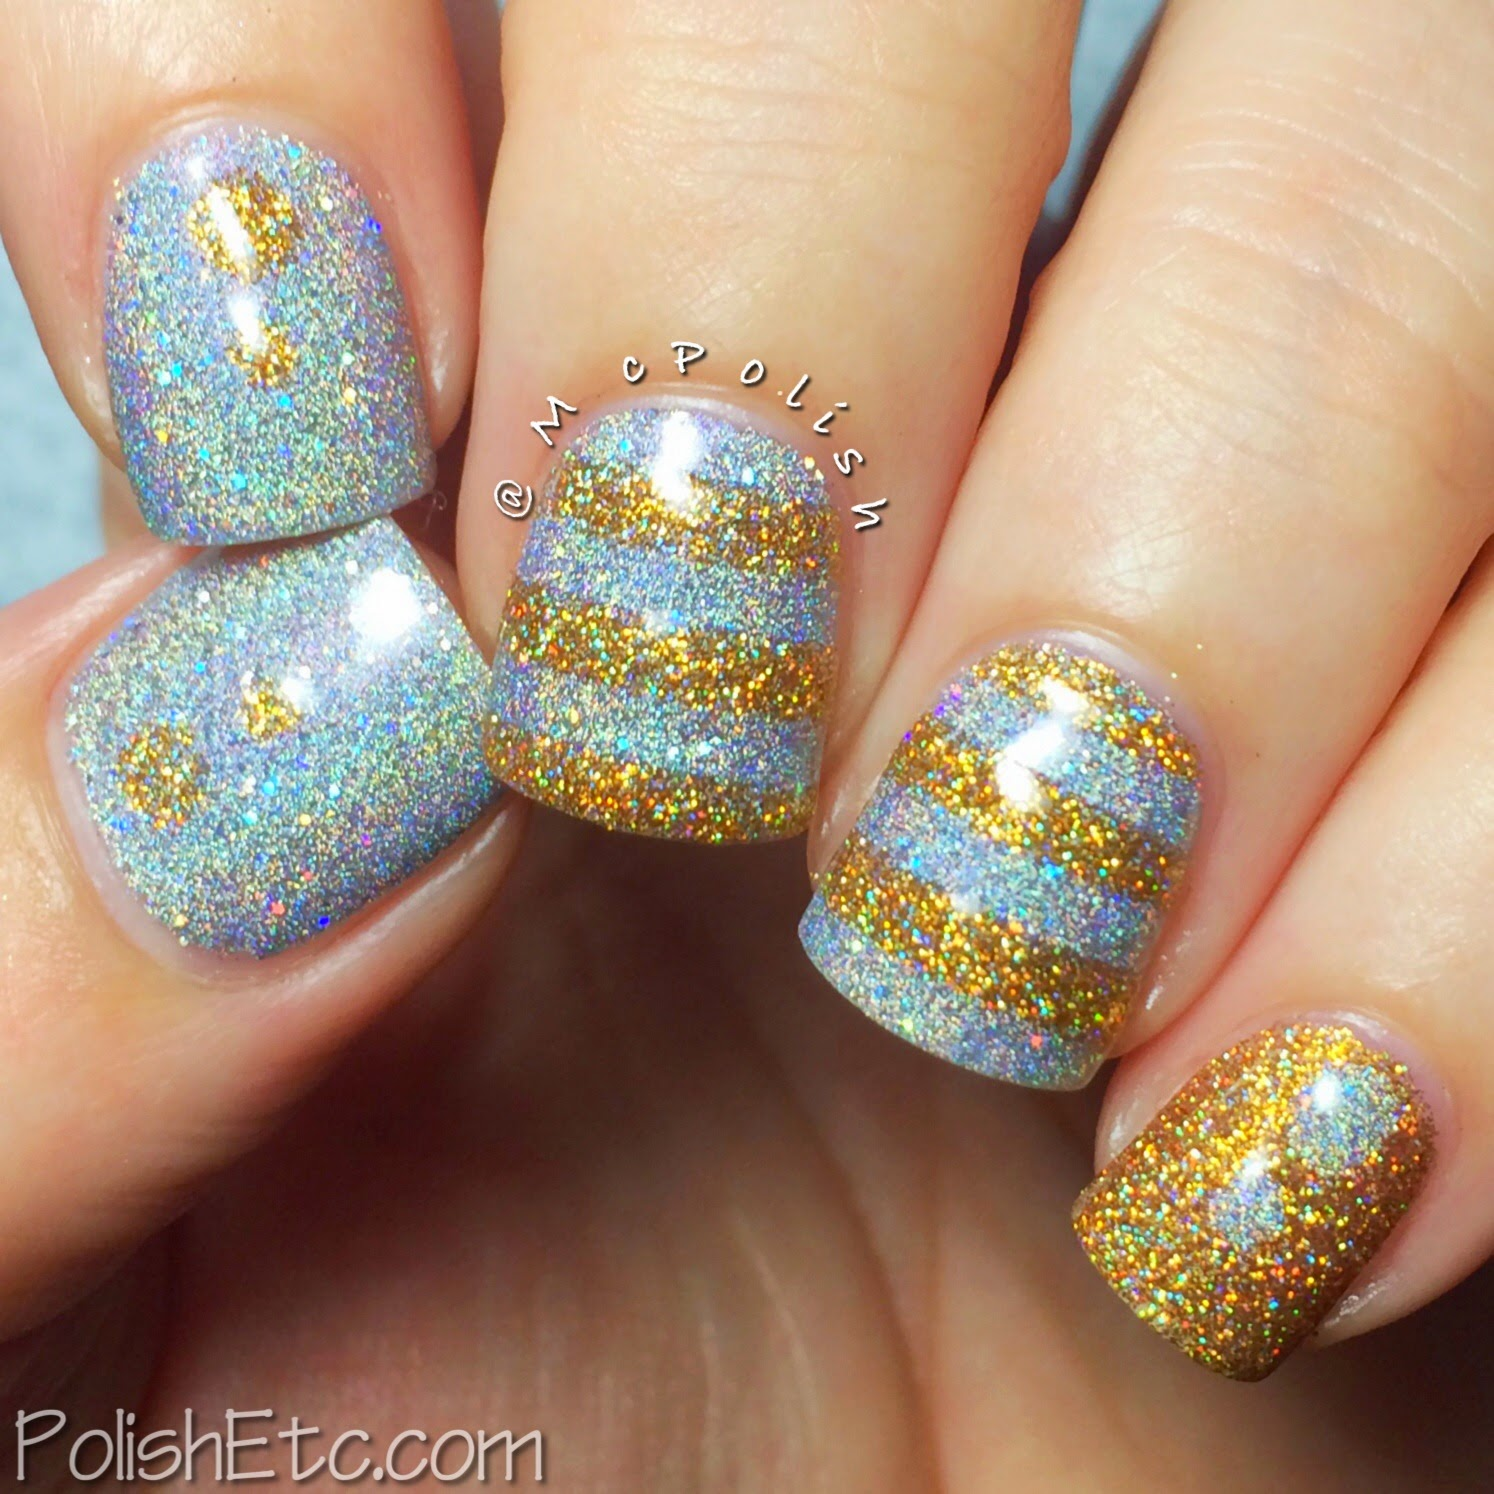 31 Day Nail Art Challenge - #31dc2014 - McPolish - STRIPES